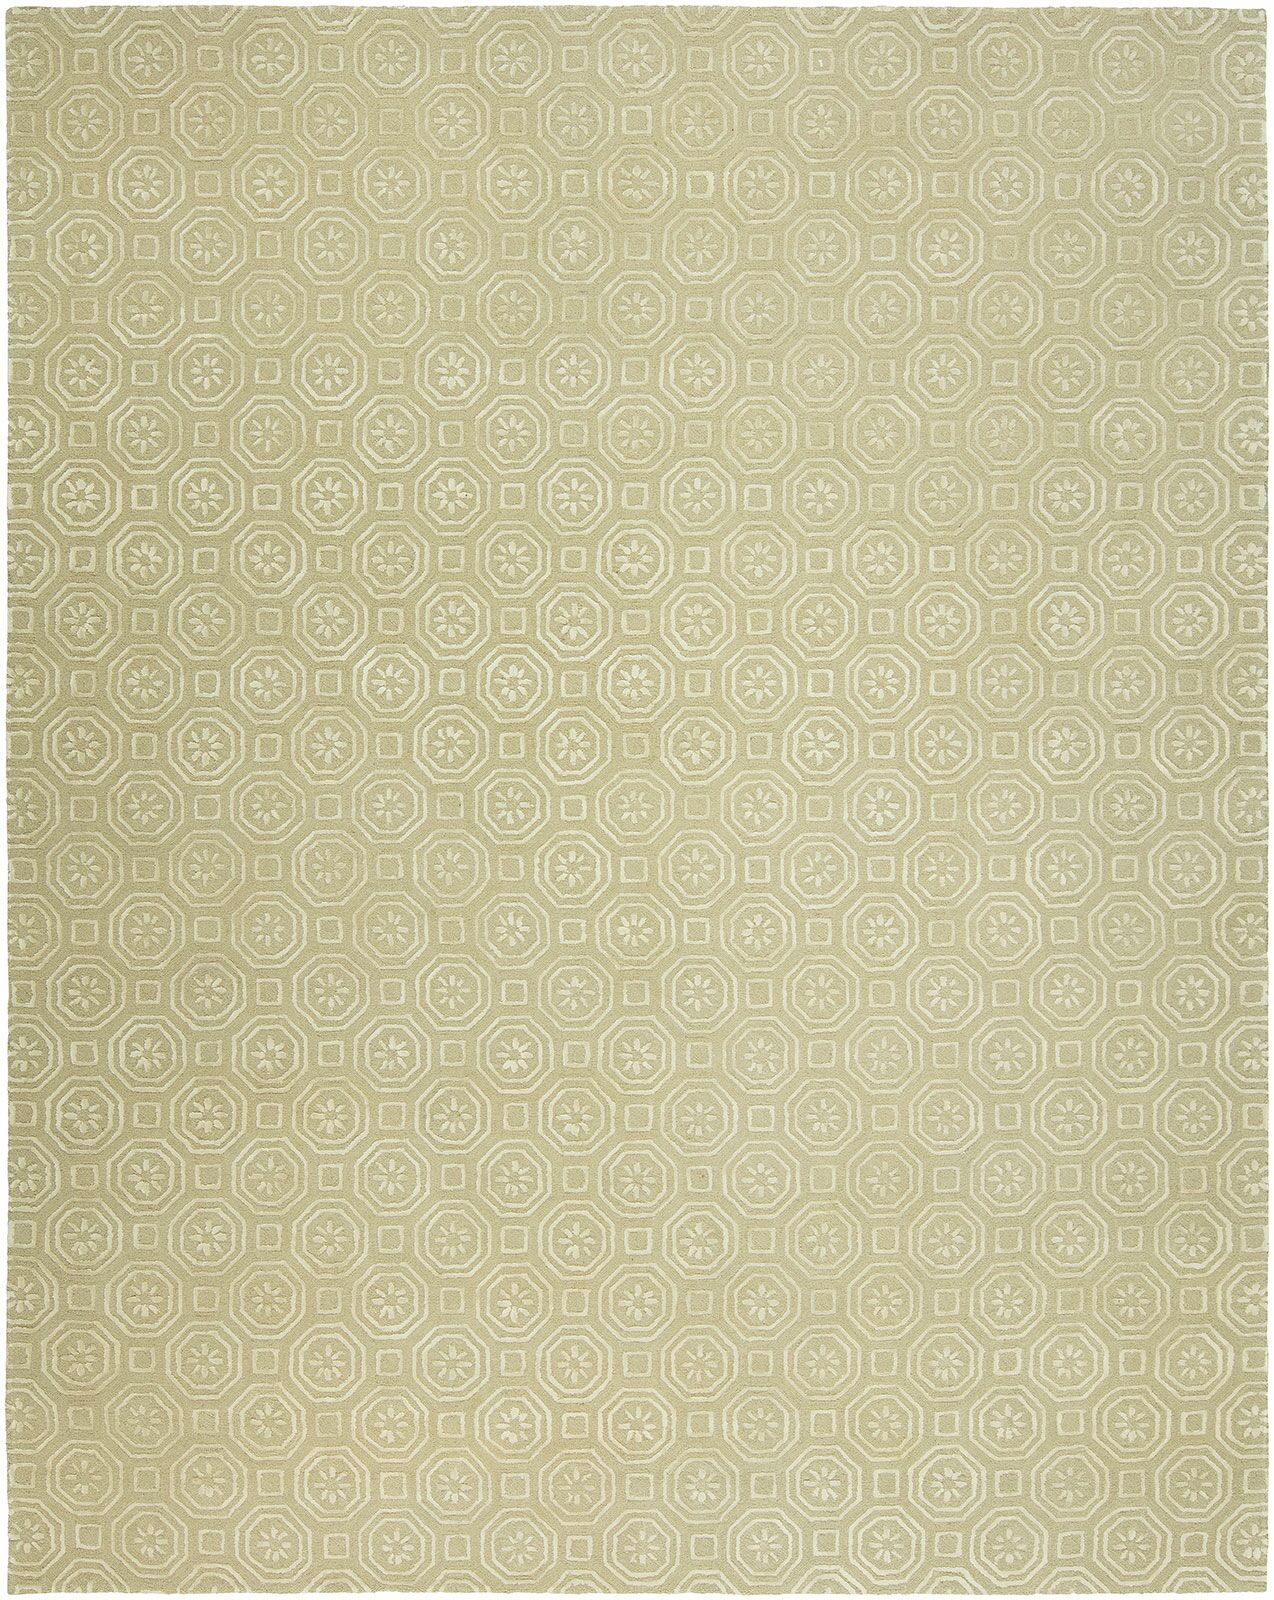 Rivka Hand-Tufted Wool Beige Area Rug Rug Size: Rectangle 9' x 12'